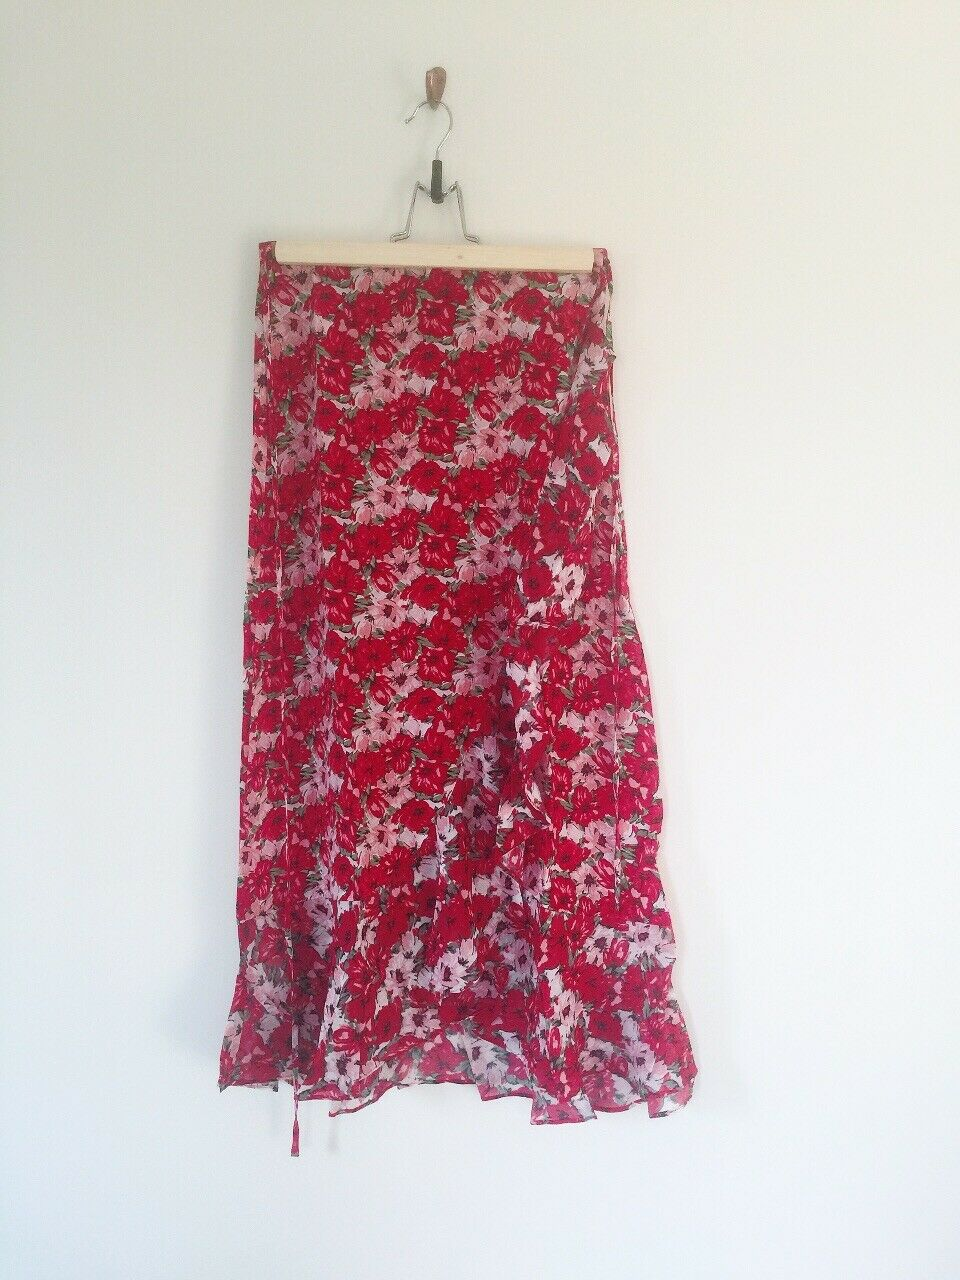 Rixo London Gracie Floral Wrap Skirt Größe XS